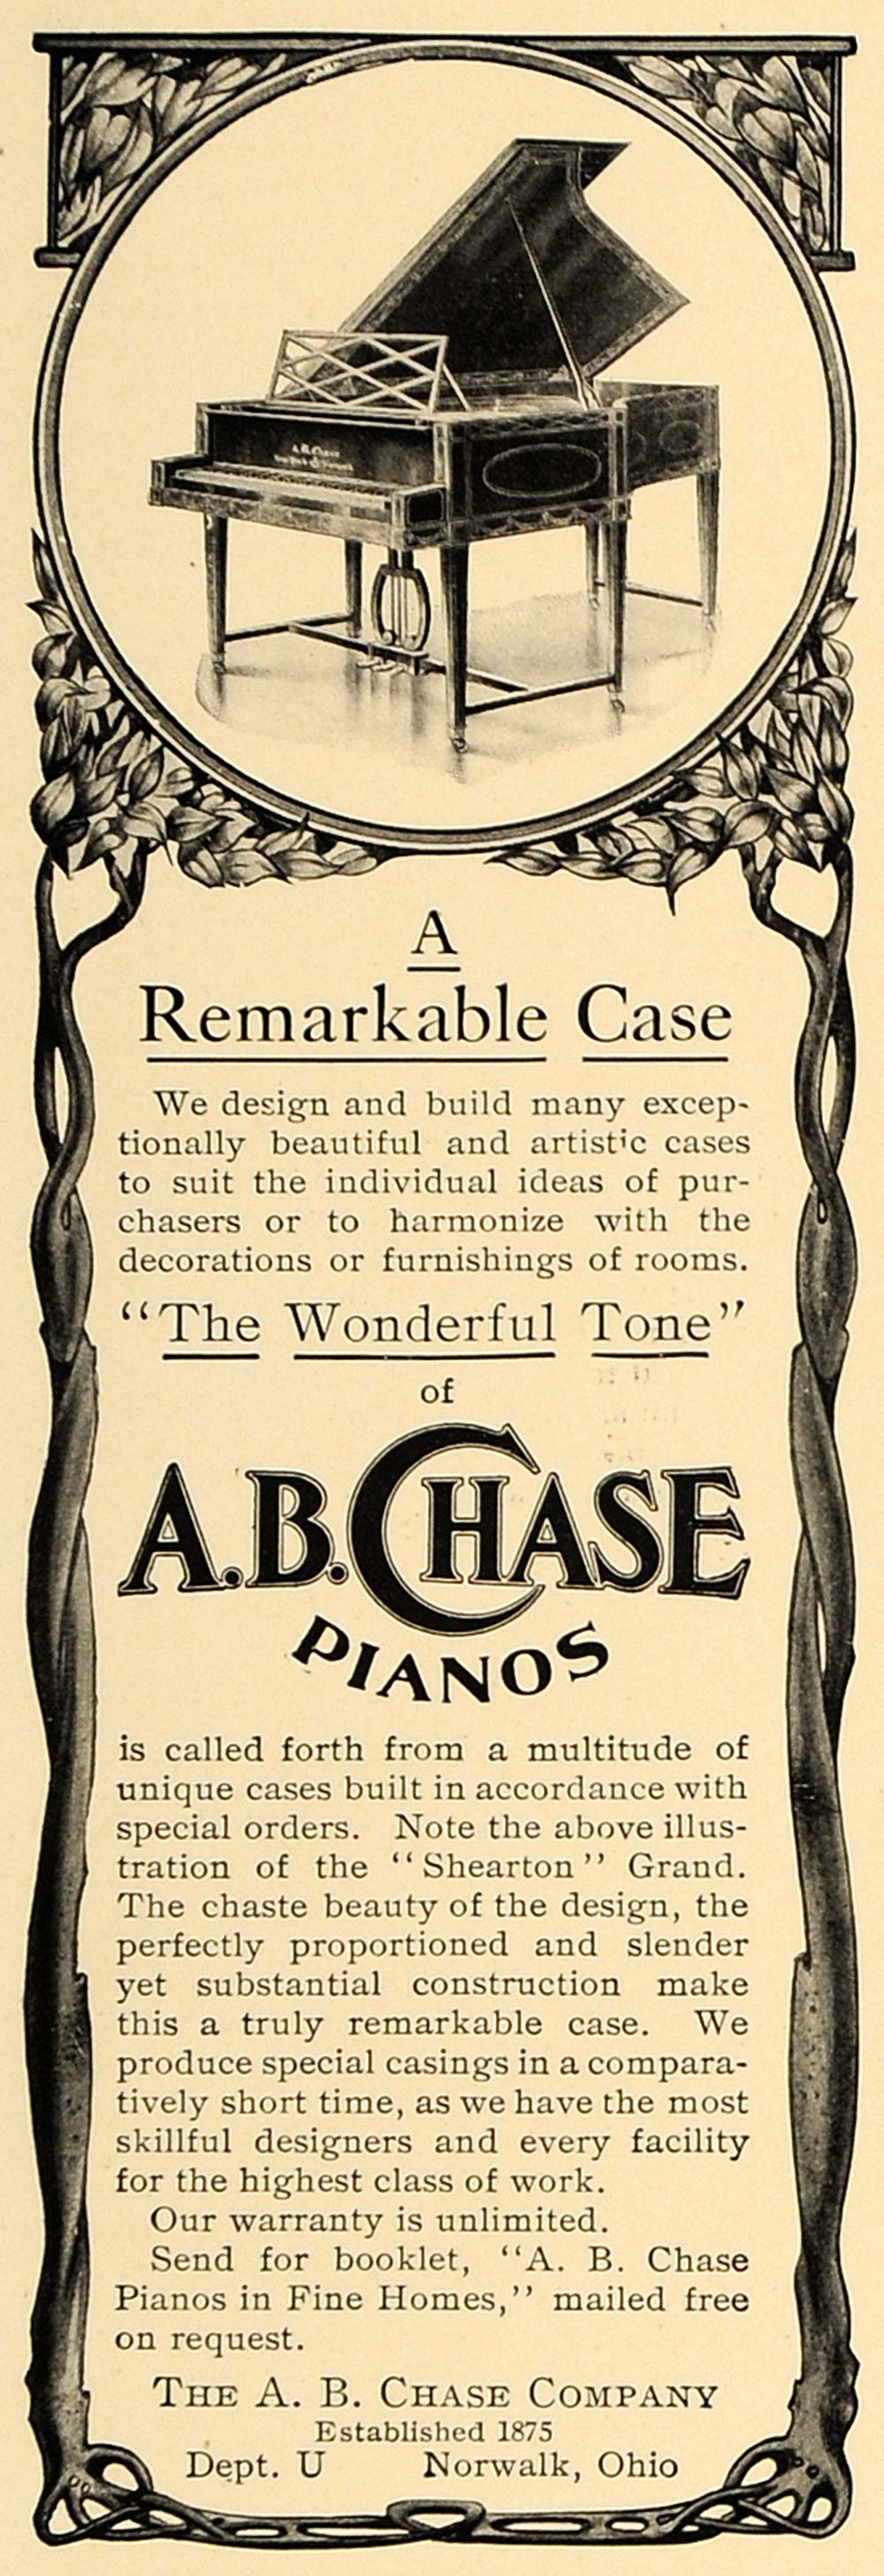 1906 Ad A.B. Chase Pianos Shearton Grand Norwalk Ohio - ORIGINAL ADVERTISING CL4